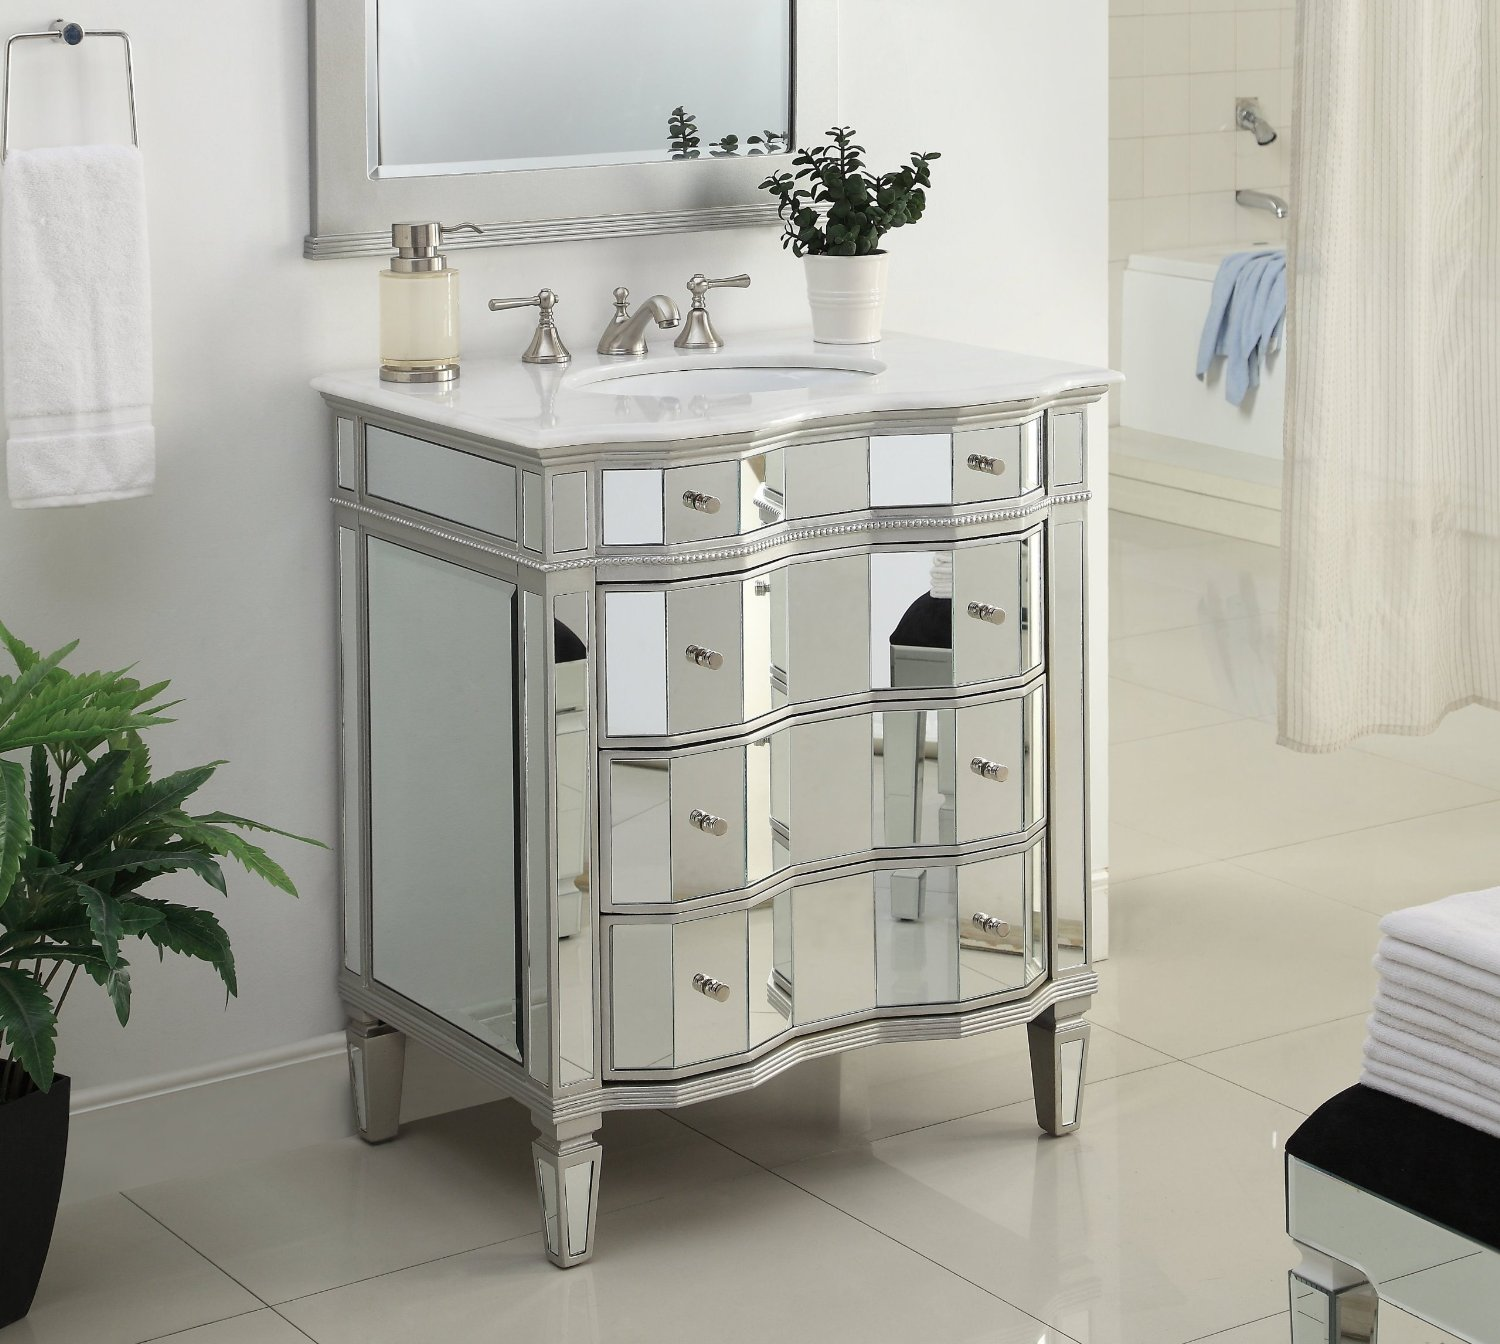 30 Inch Bathroom Vanity Cabinet White adelina 30 inch mirrored bathroom vanity, imperial white marble